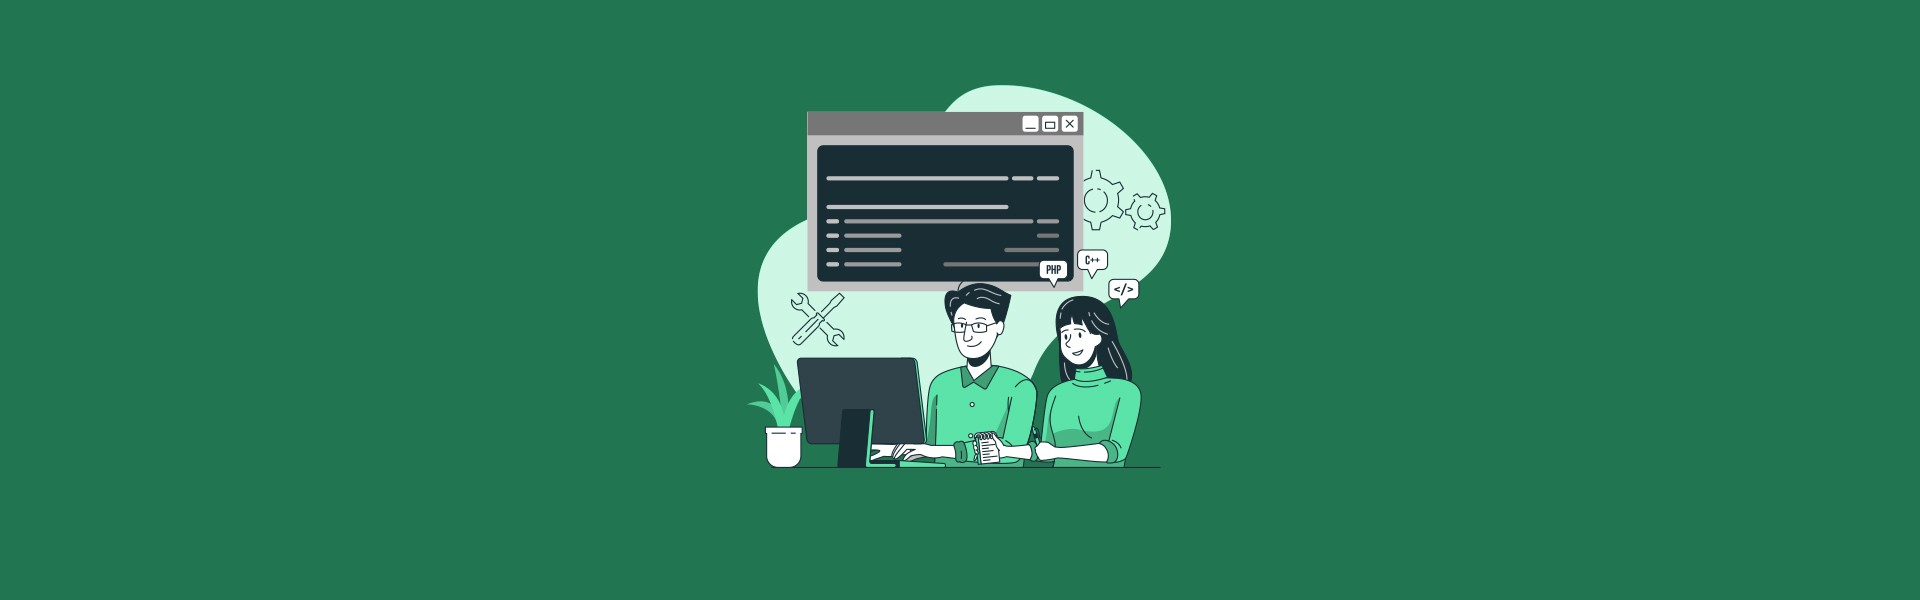 Best tips for Hiring Remote Developers in 2021_banner